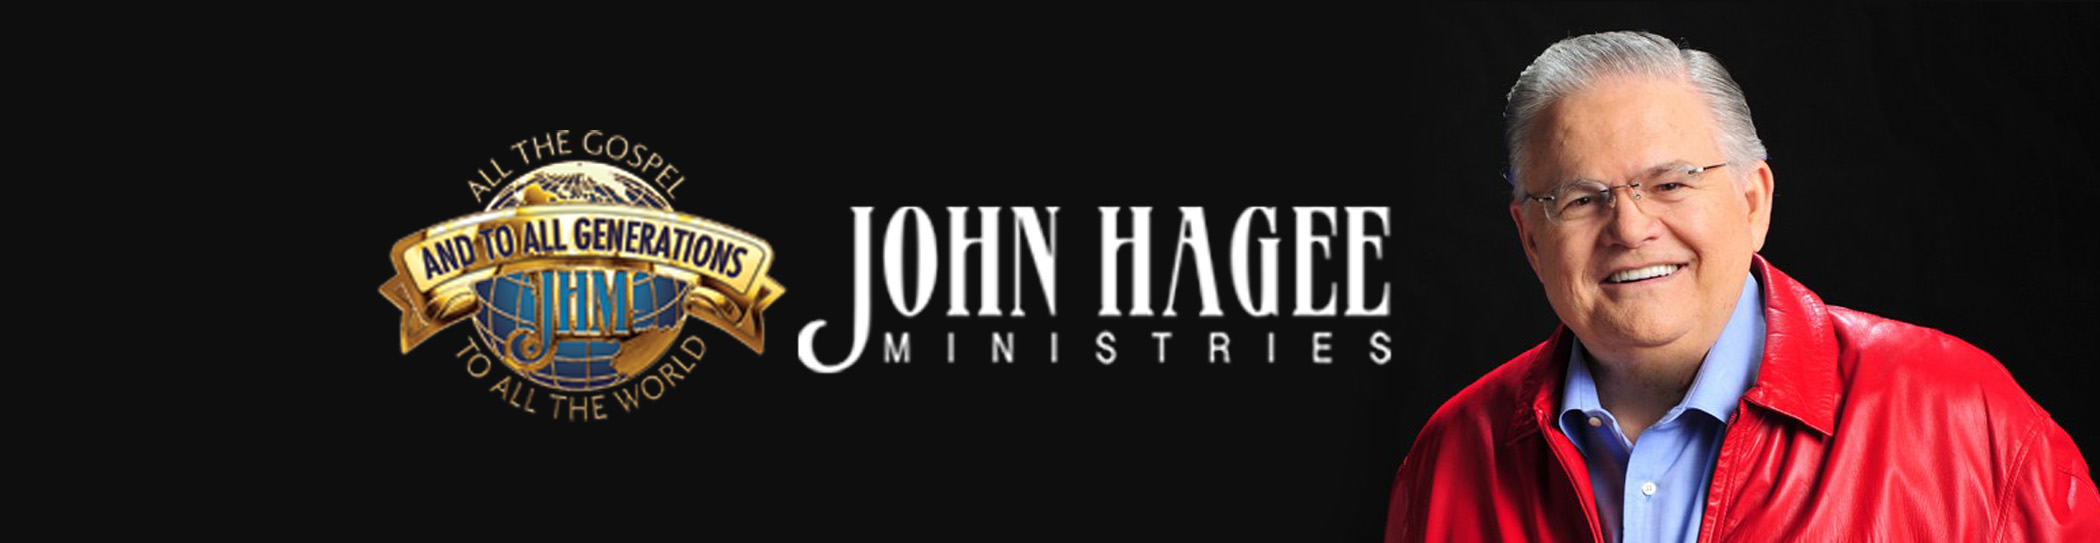 John Hagee Ministries Pastor John C. Hagee is the founder and Senior Pastor of Cornerstone Church in San Antonio, Texas.